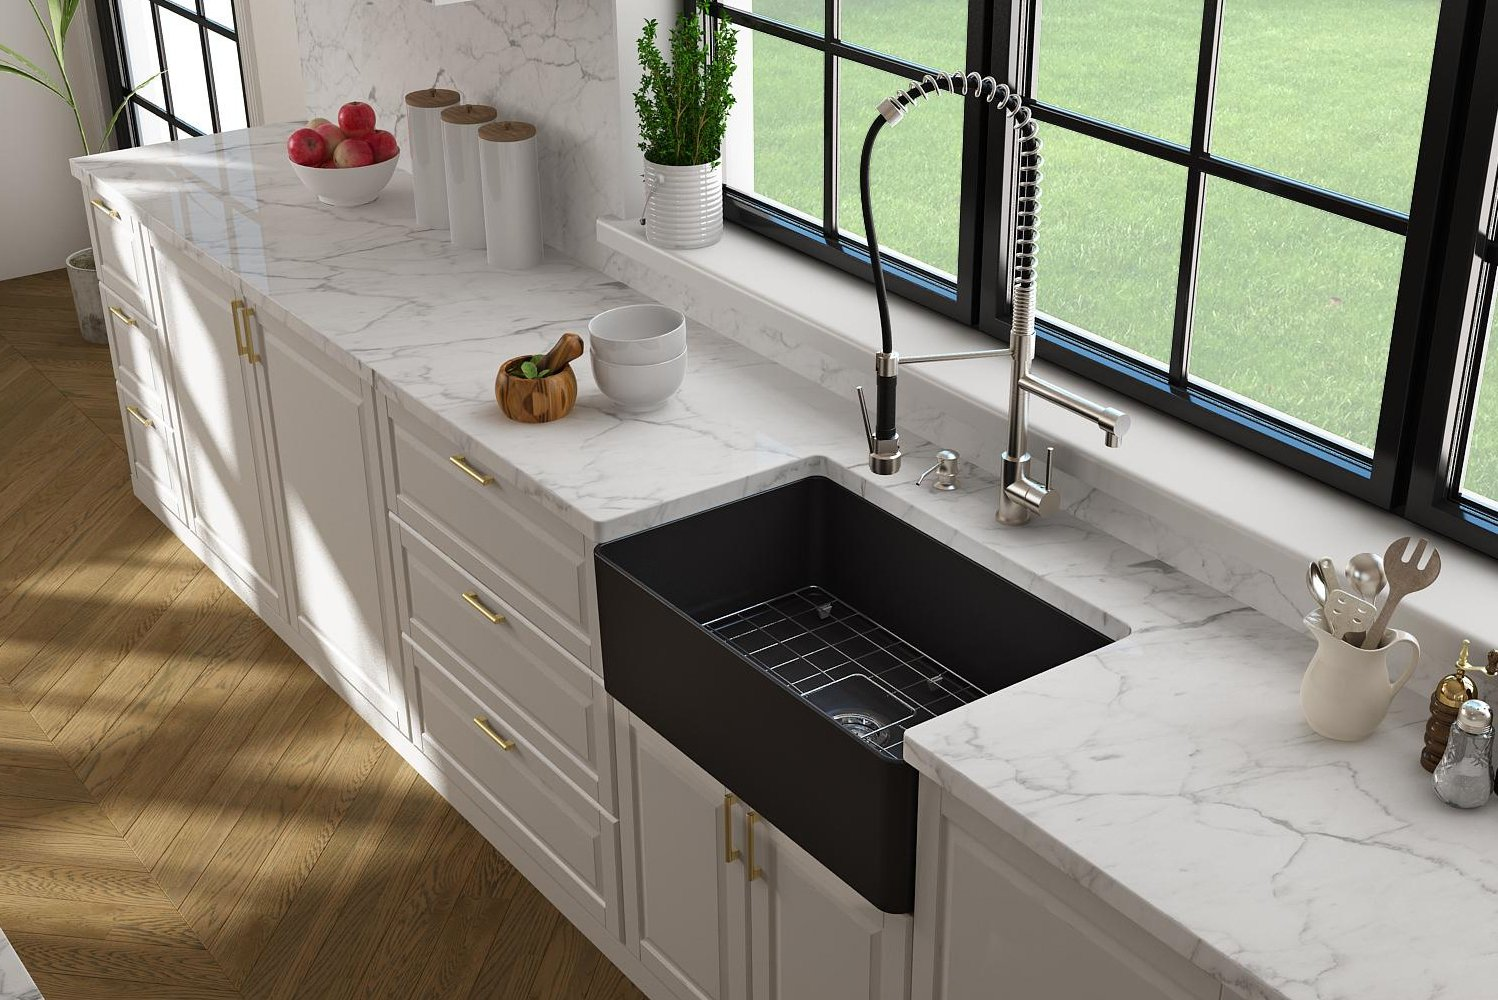 The Forte apron-front sink features a slim profile to allow its wall thickness to be cut nearly in half versus traditional fireclay sinks.